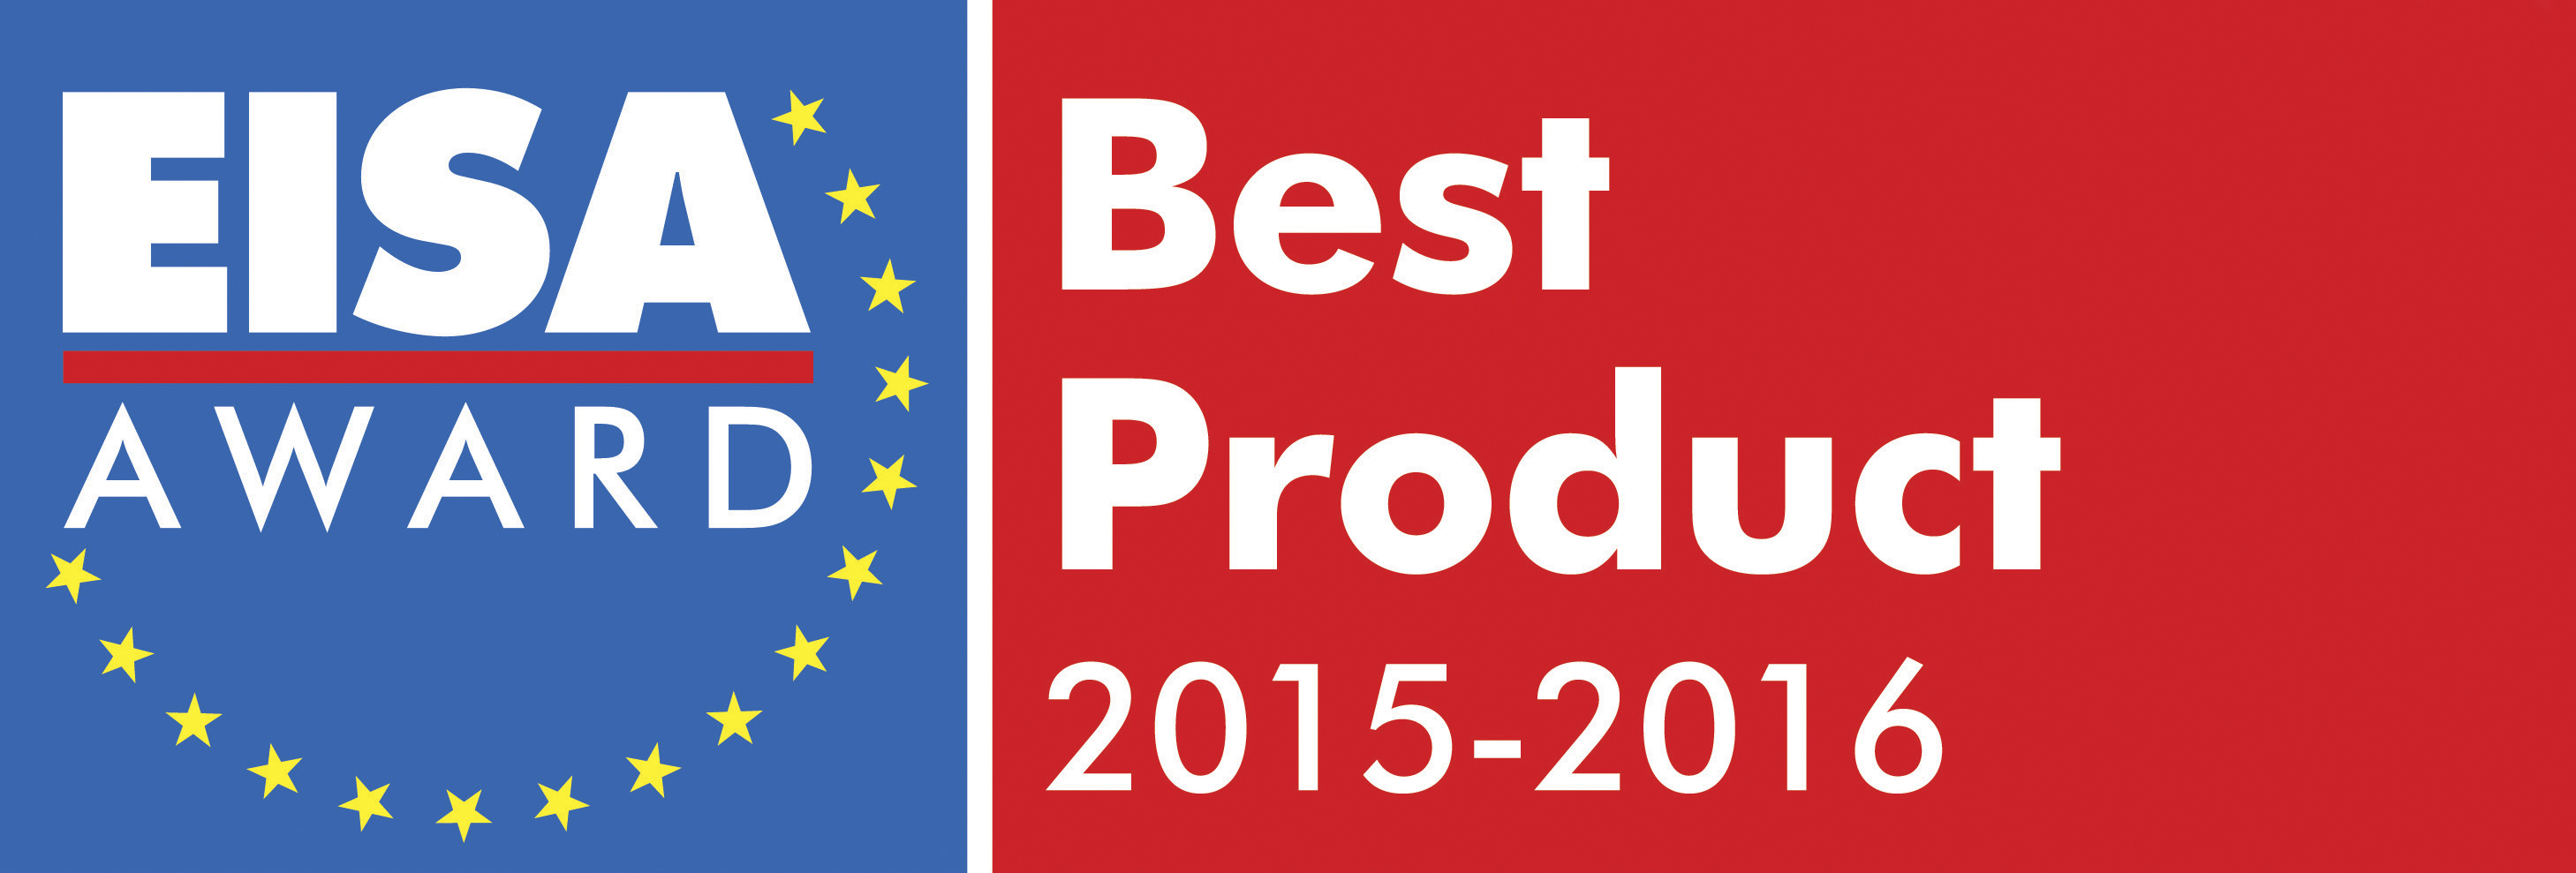 best product 2015-2016